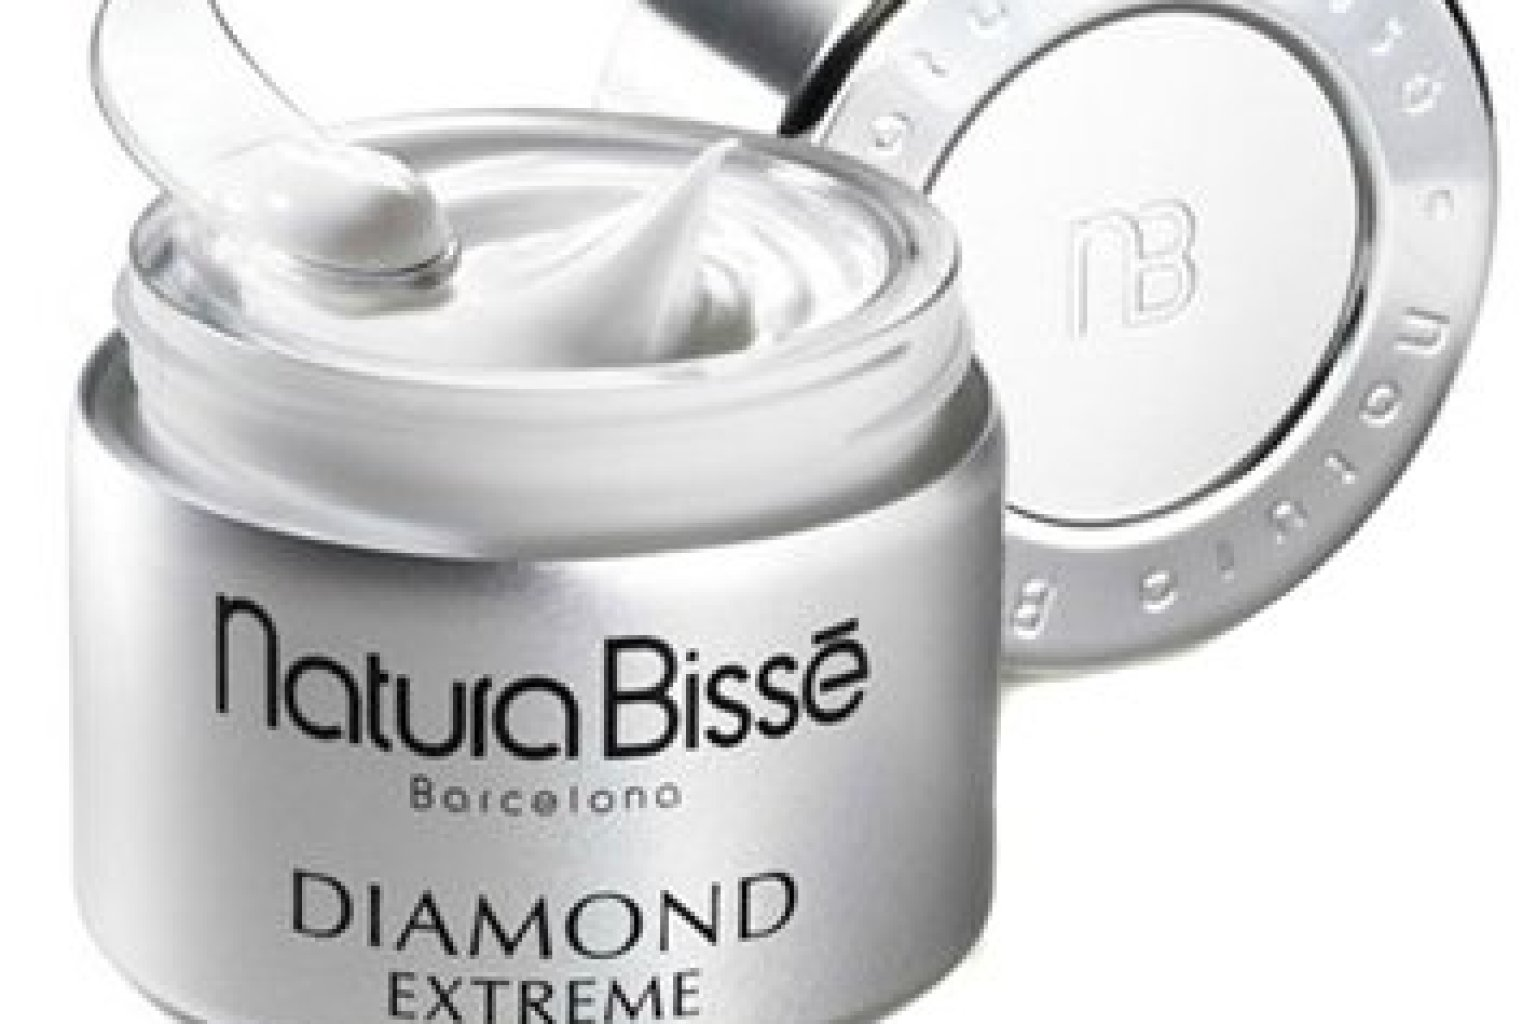 Diamond Beauty Treatments To Bling Out Your Look (PHOTOS) | HuffPost